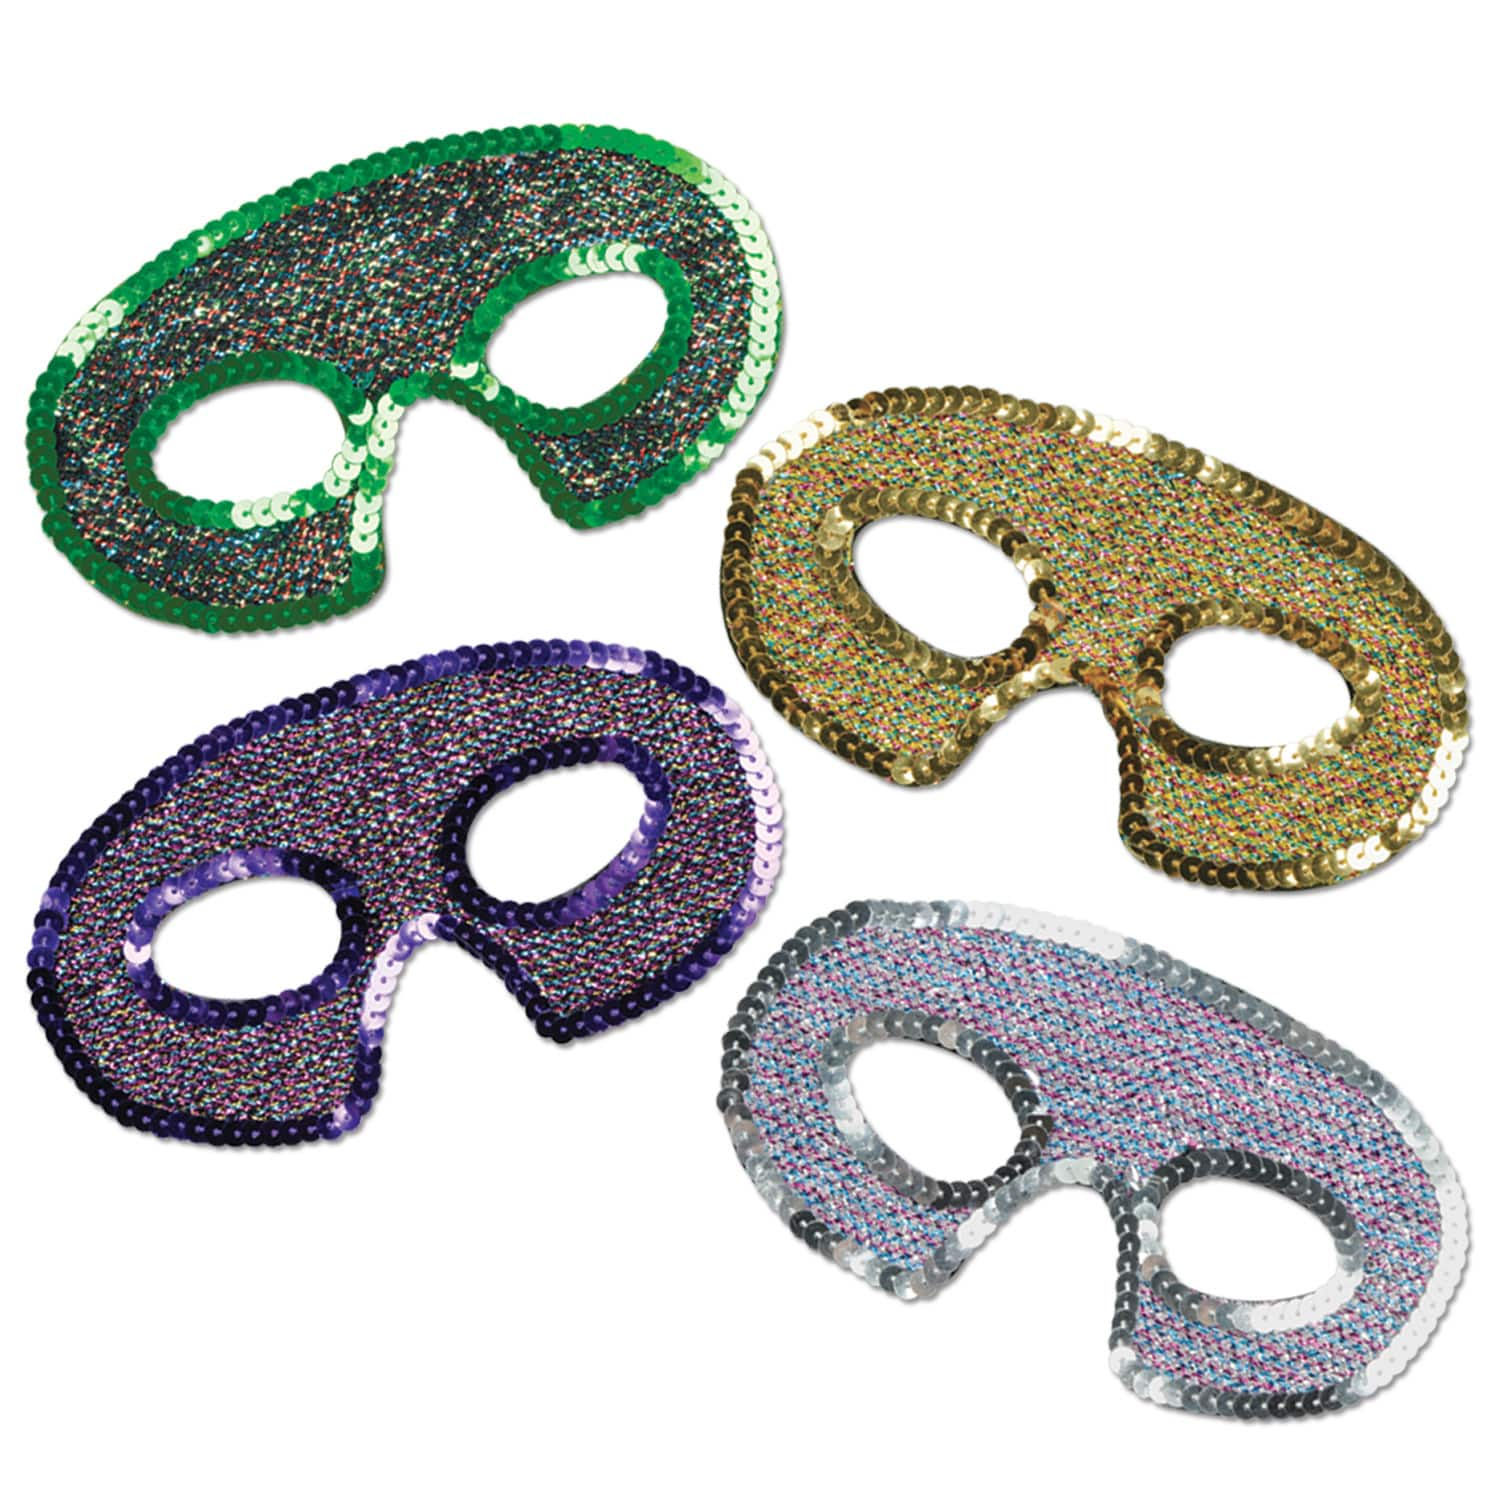 beautiful sequined half masks in green, gold, purple, and silver that cover just the eyes